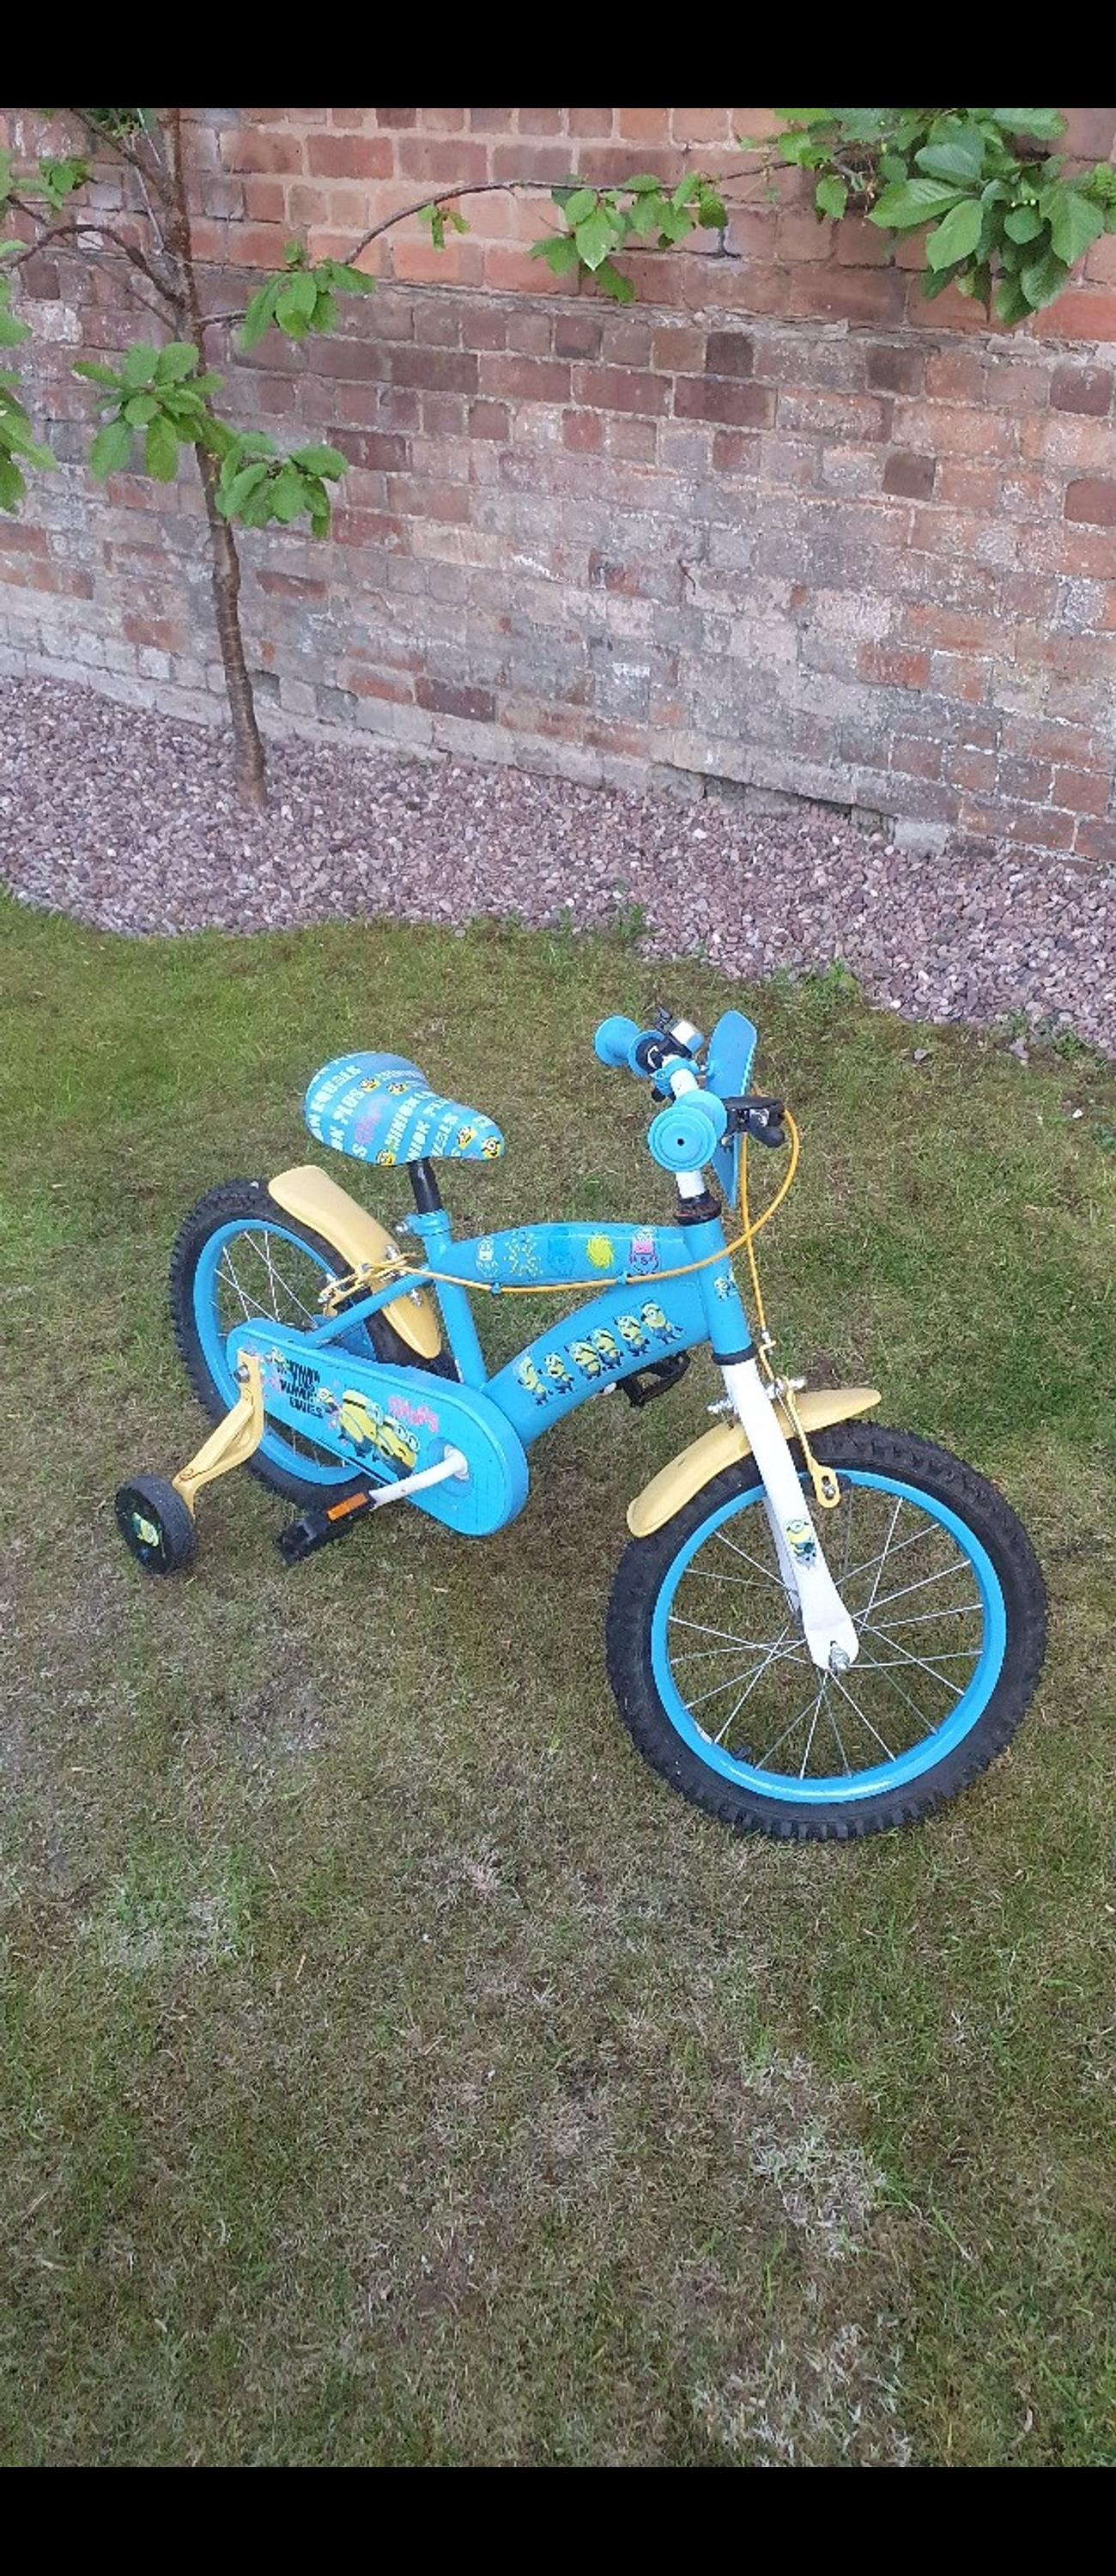 Good condition boys bike, needs a bit of TLC. Bargain priced to sell quick.